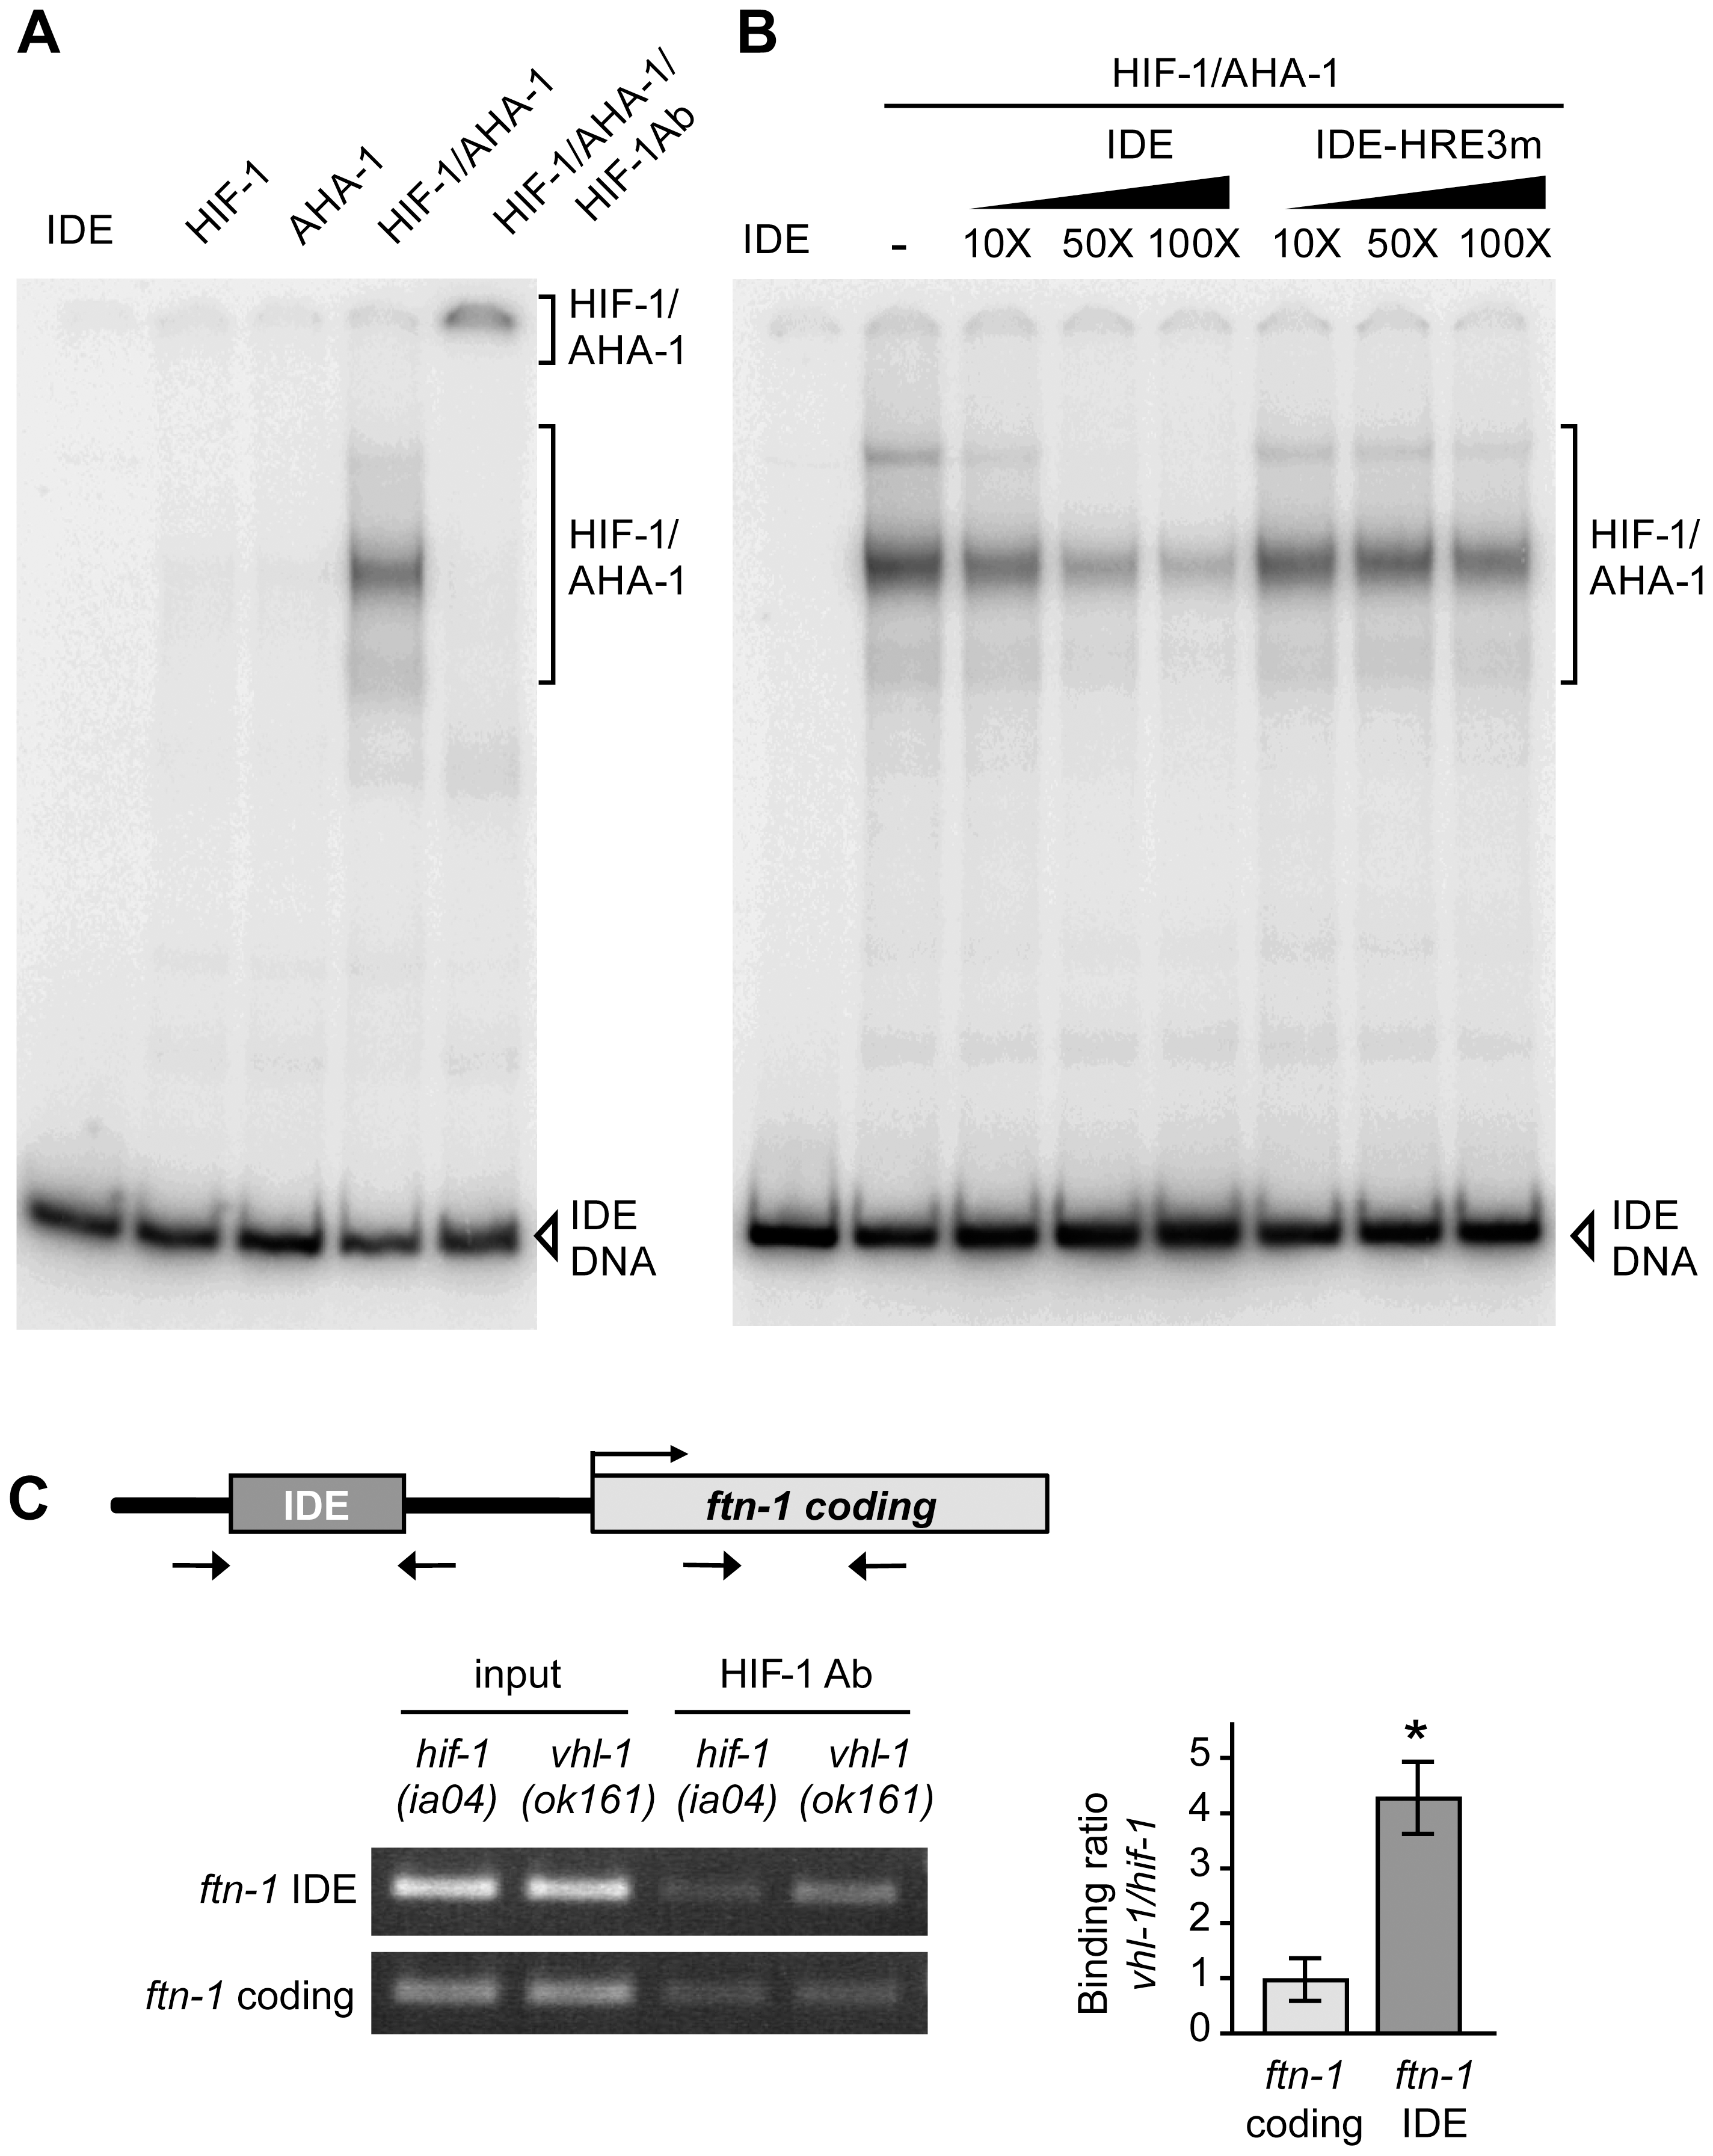 HIF-1 binds to the <i>ftn-1</i> IDE in vitro and in vivo.